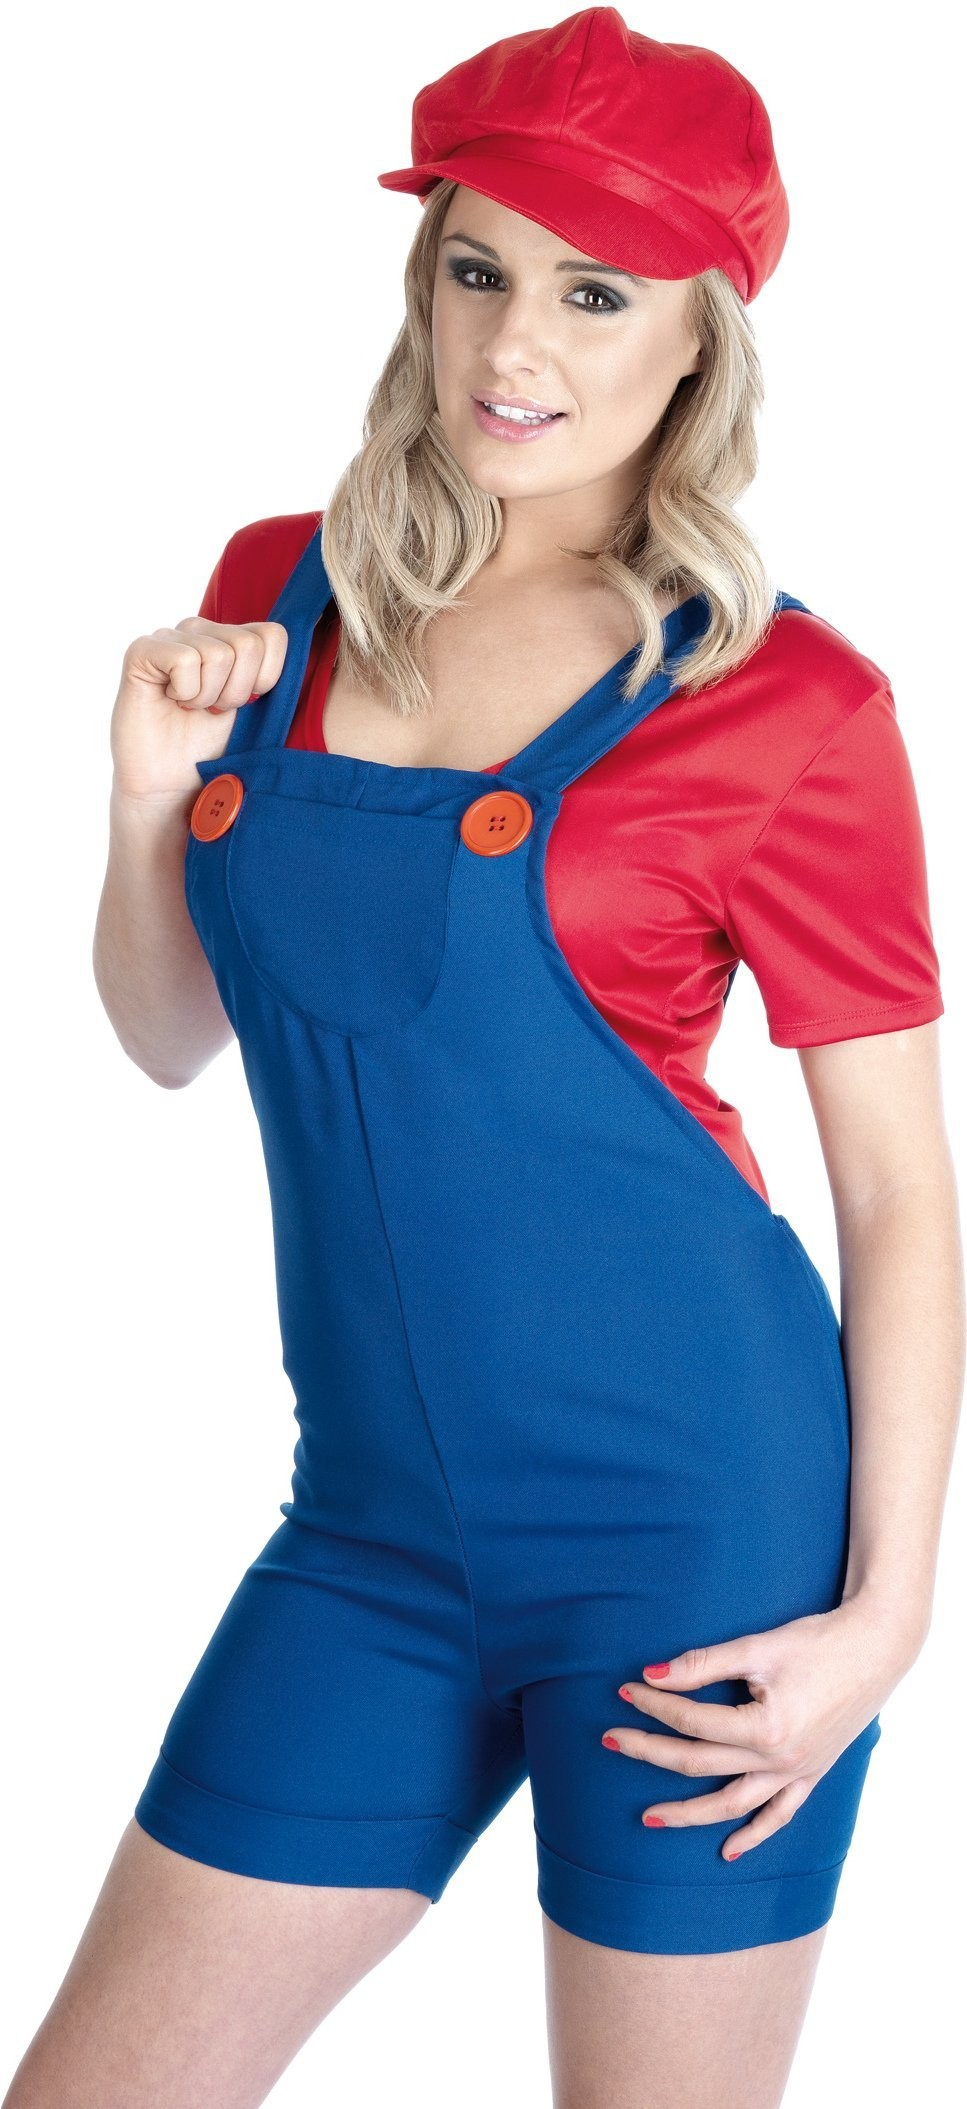 Red Plumbers Mate Girl Videogames Outfit - Size 28-30